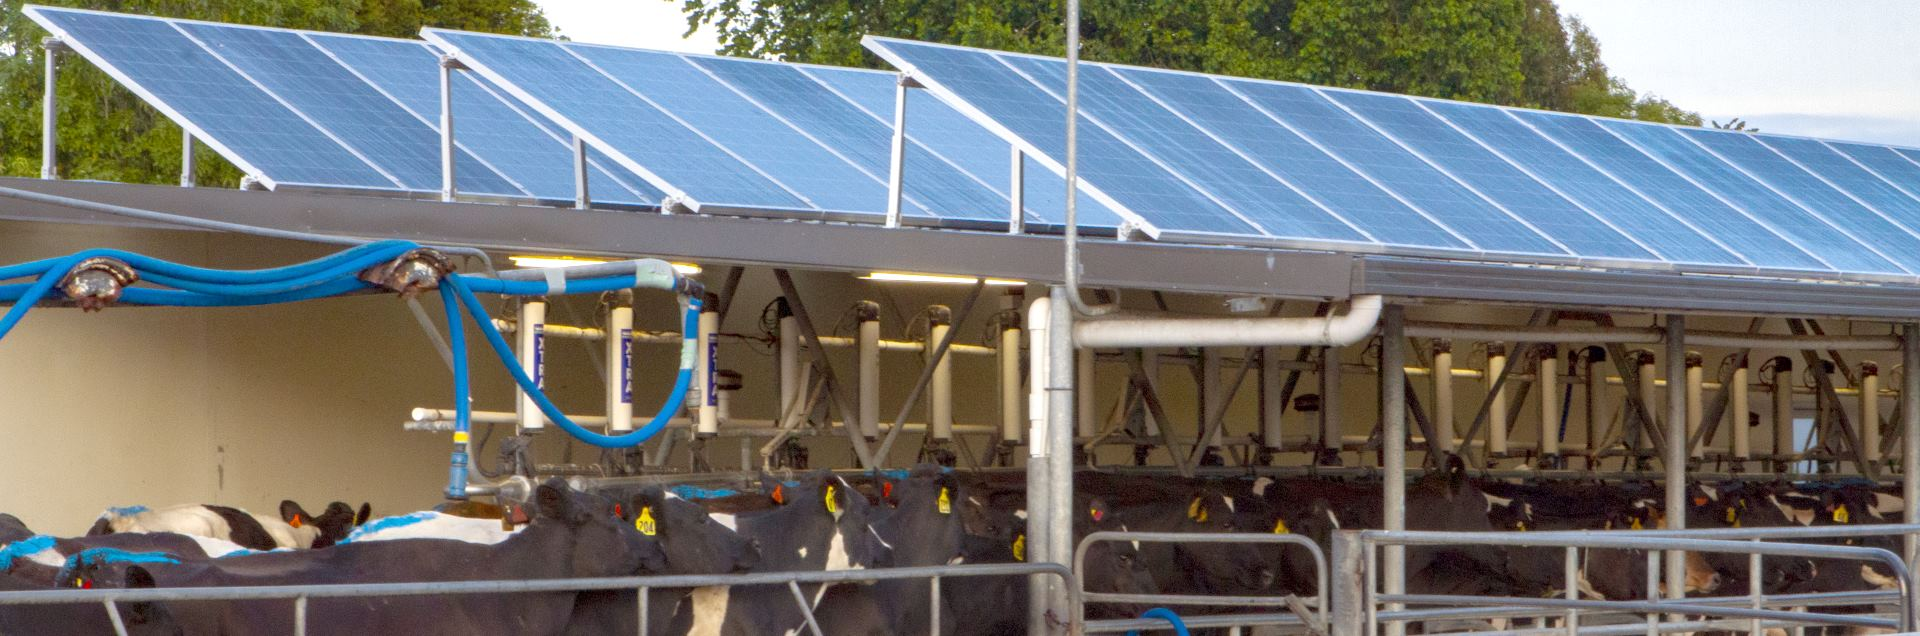 Rural Solar Dairy Case Study - Cow Shed with Solar